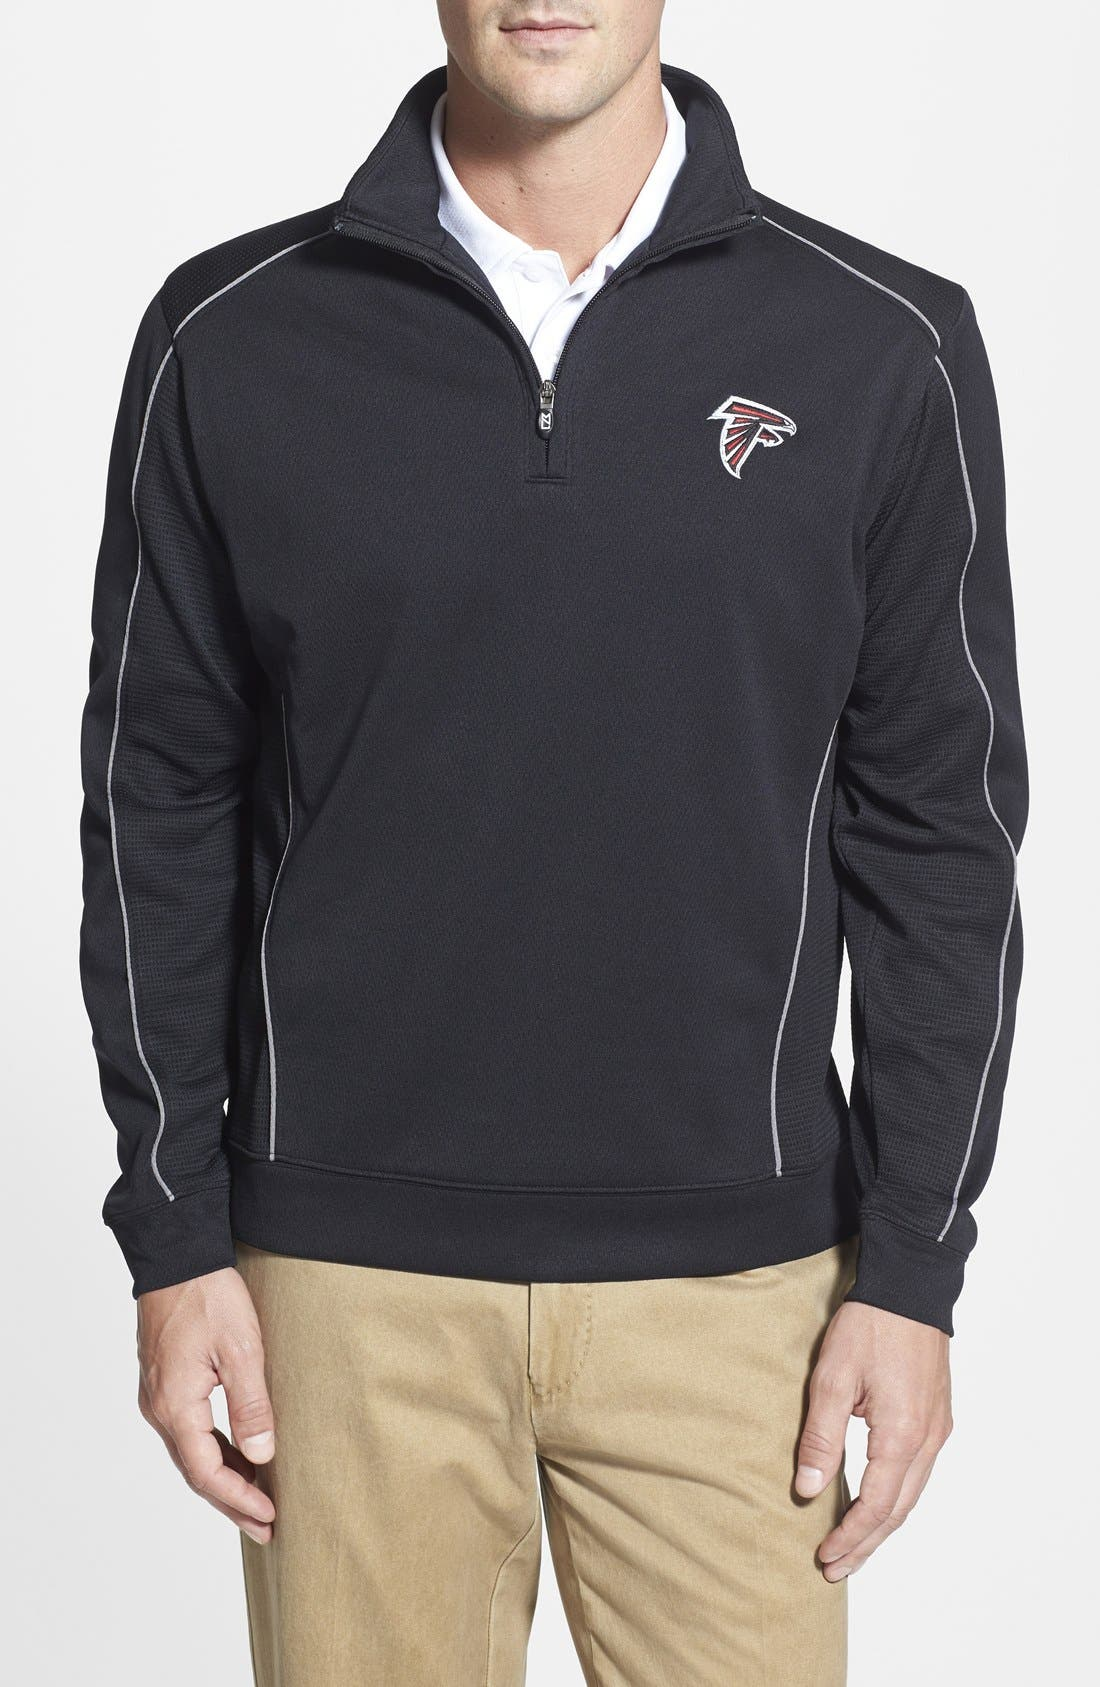 Atlanta Falcons - Edge DryTec Moisture Wicking Half Zip Pullover,                             Main thumbnail 1, color,                             001